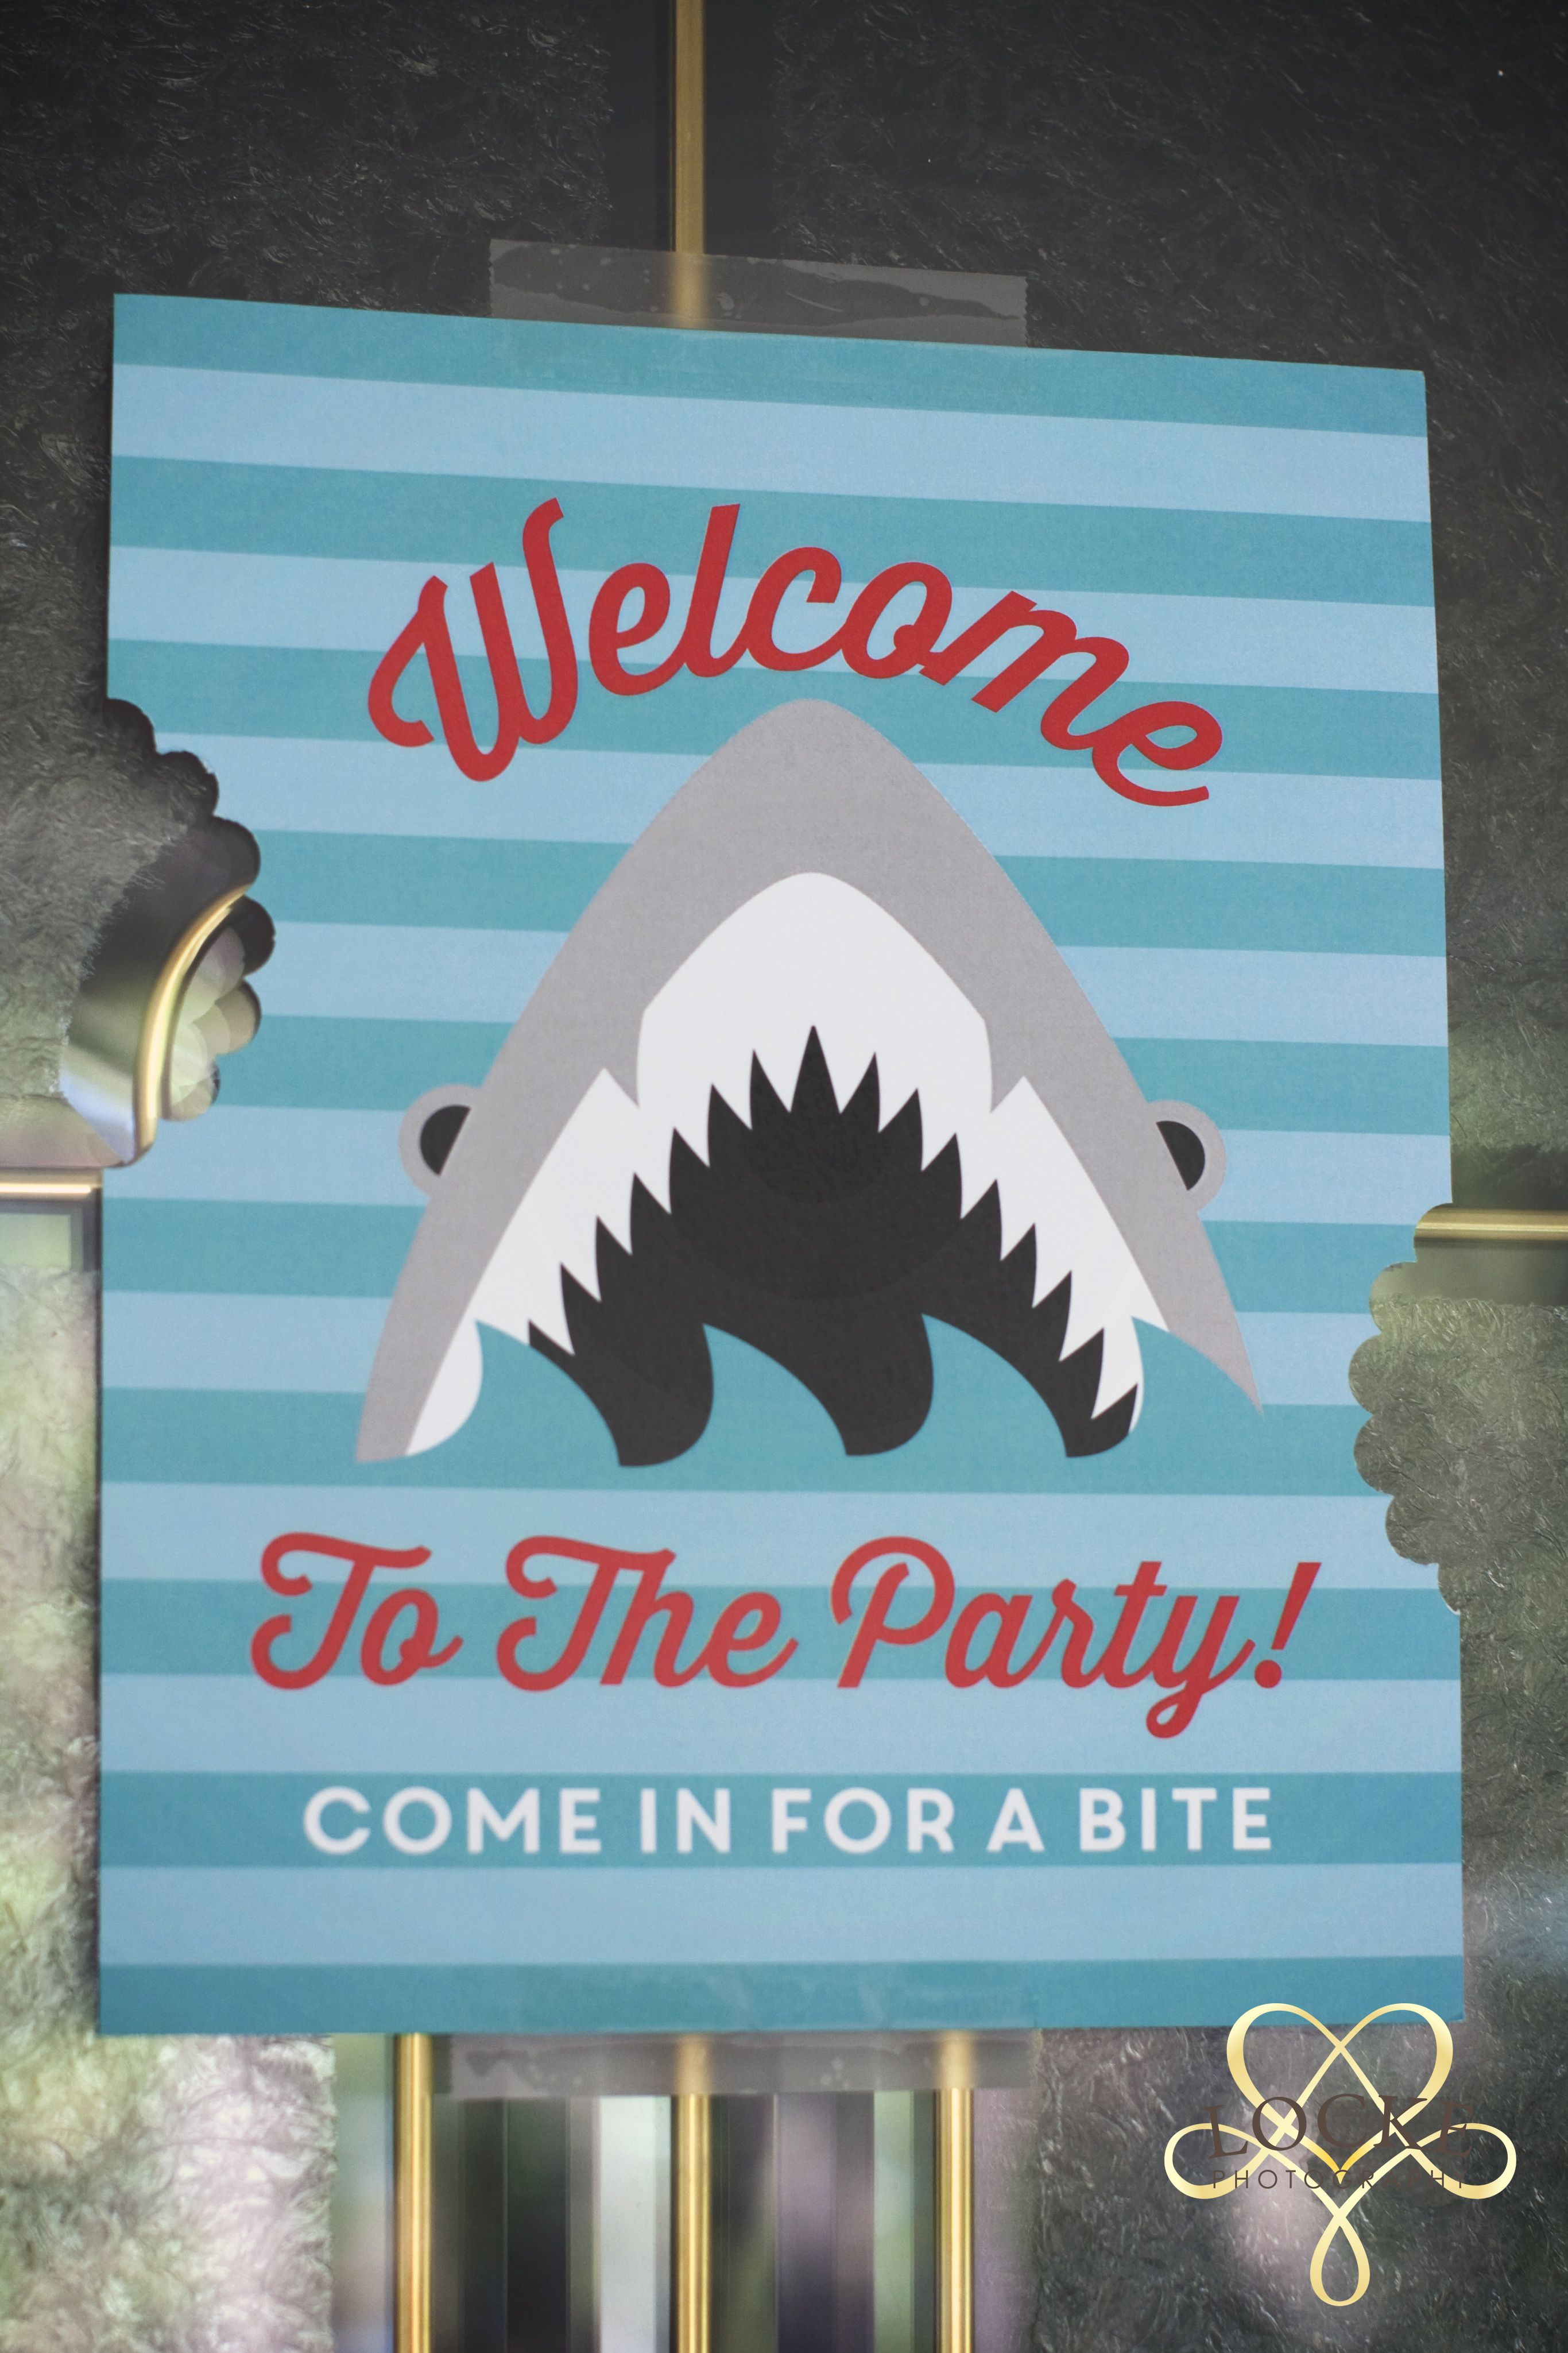 Printable welcome sign by: https://www.delightpaperie.com/shop/birthday/shark-bite-birthday-invitations/ #shark party